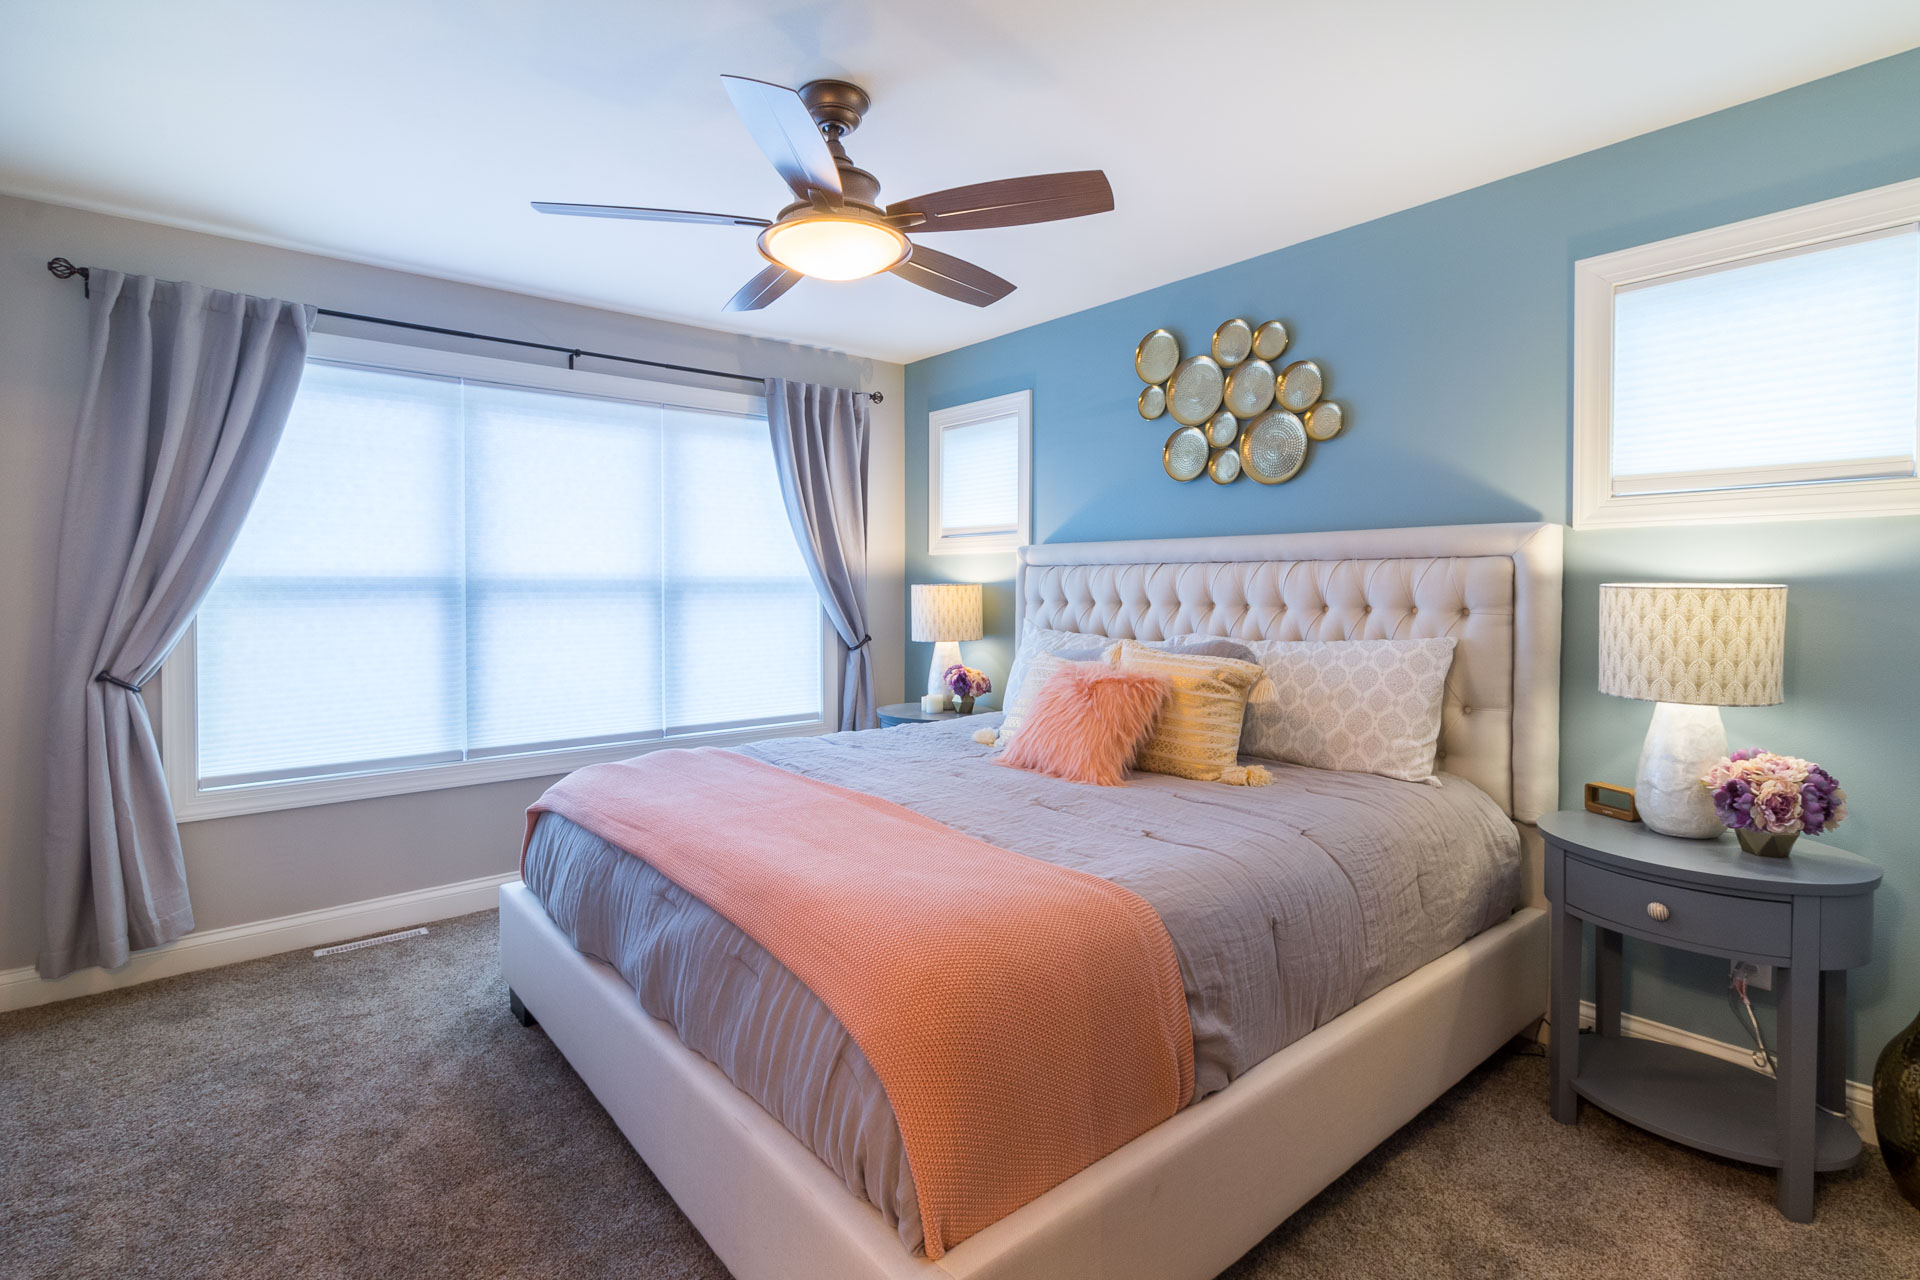 - Windows, lighting, color, furnishings… a well-planned project will come together to create the perfect feel for your master suite.